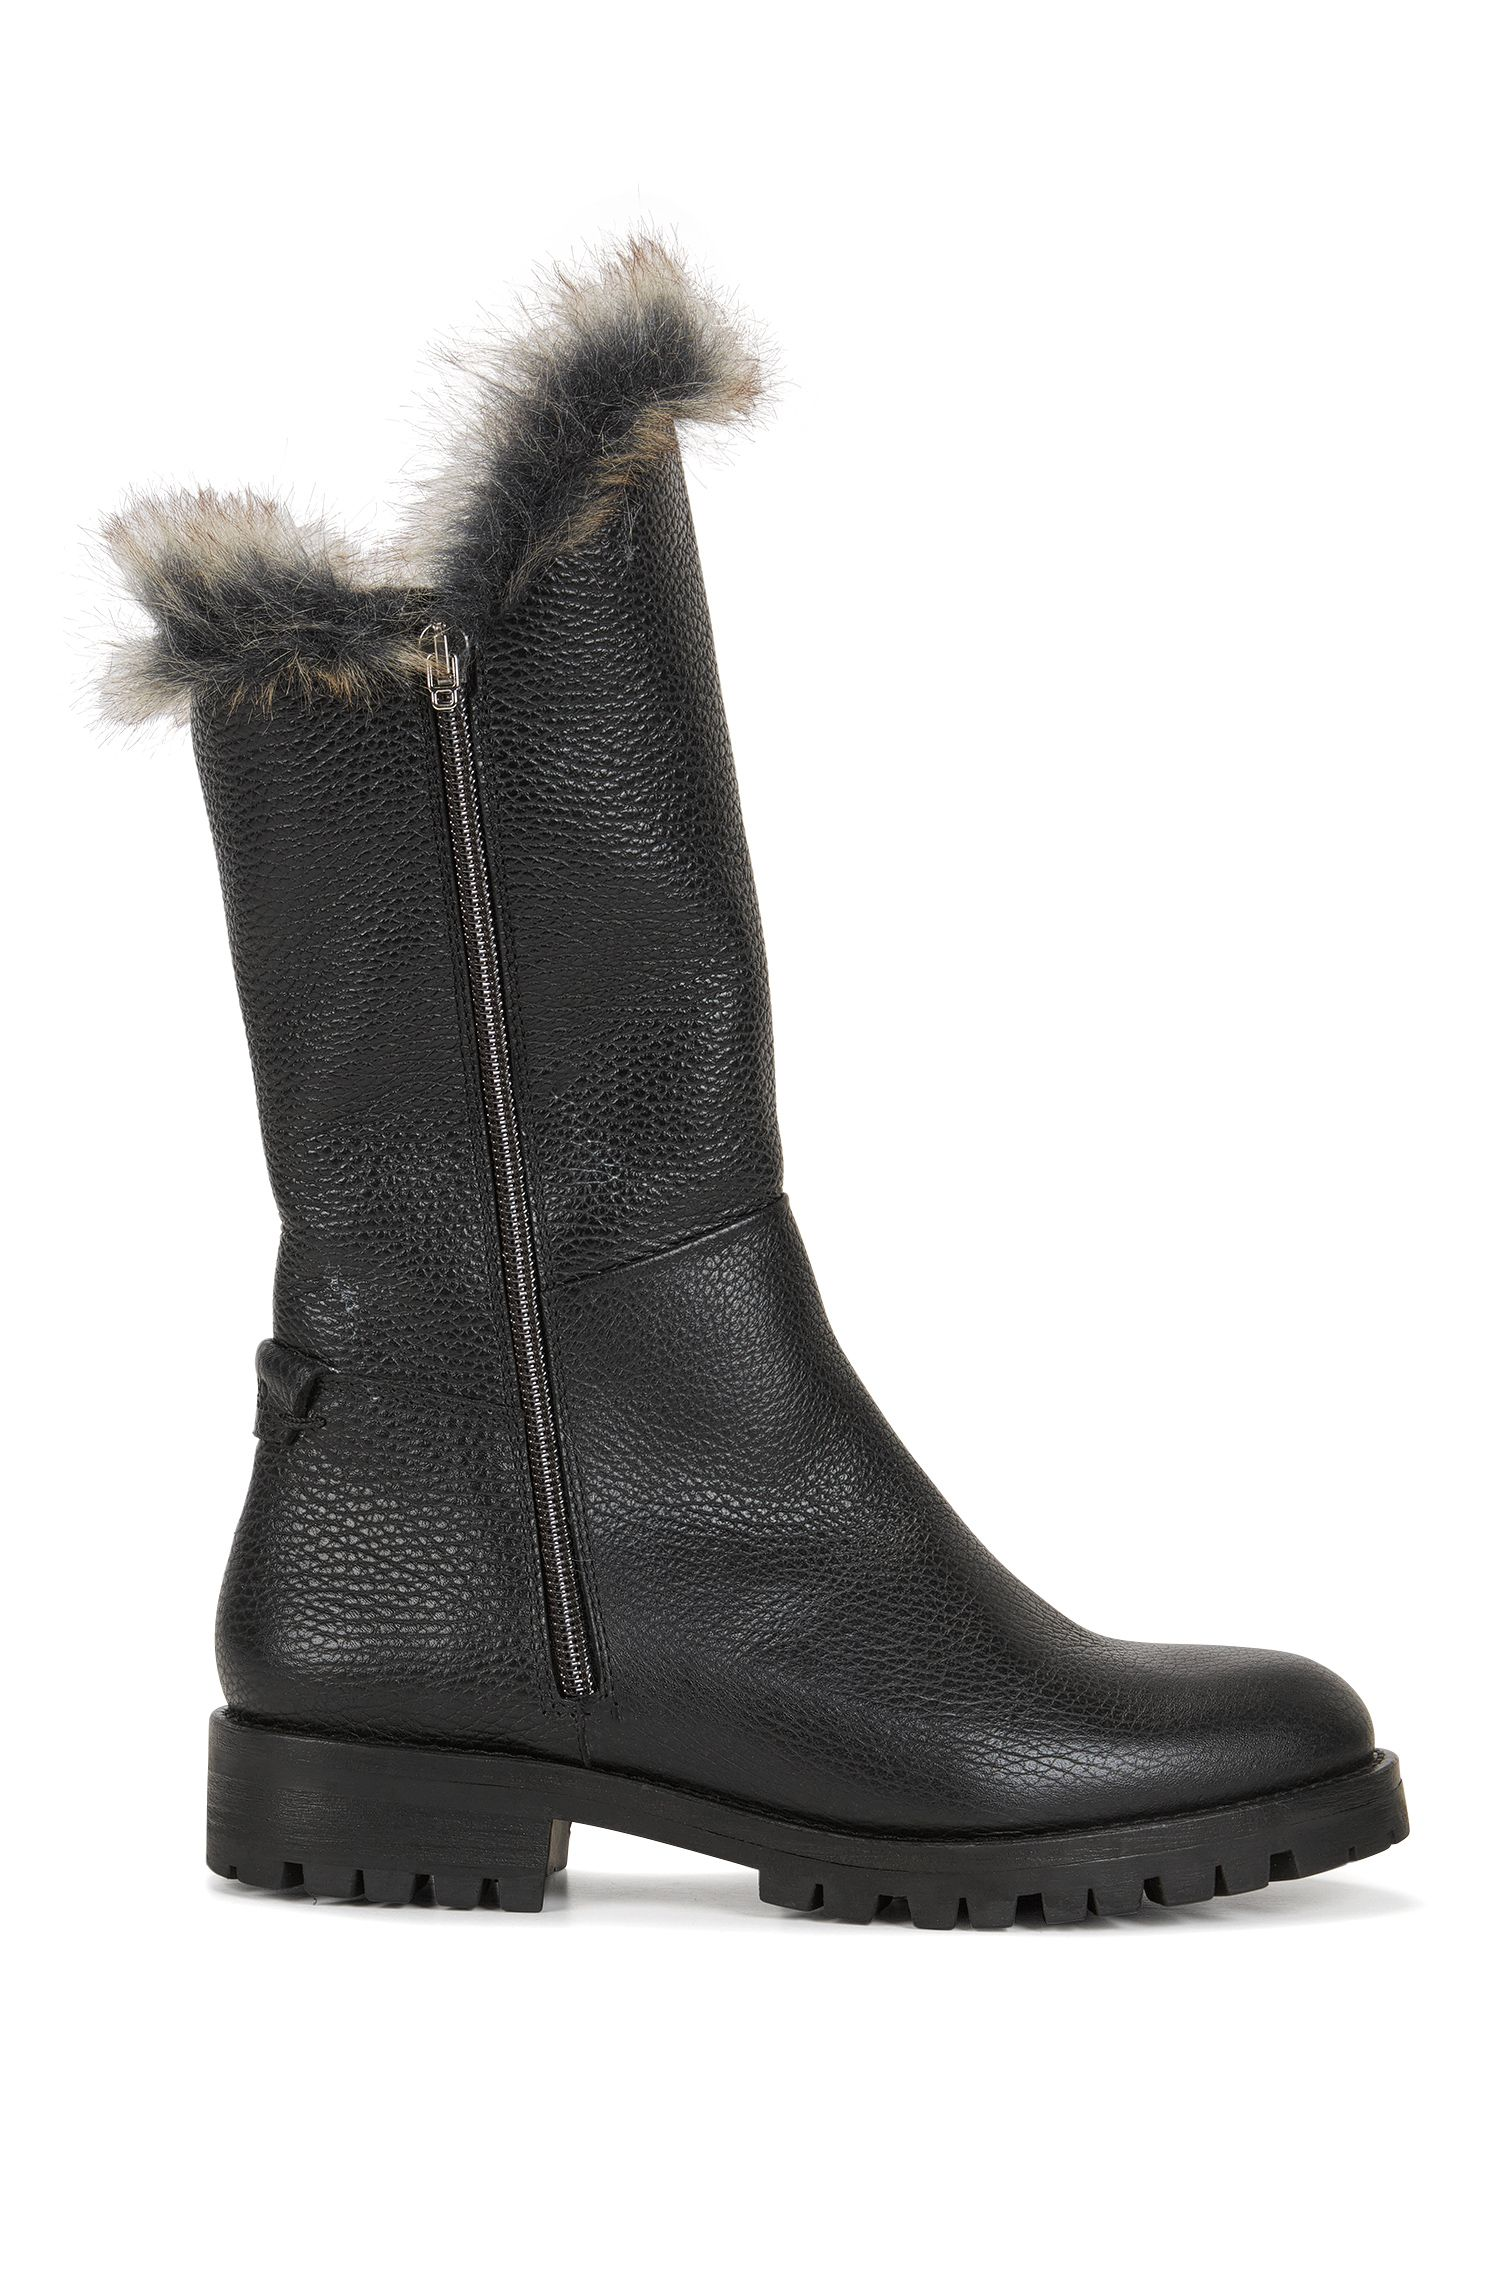 Zip-up grained leather boots with faux fur lining